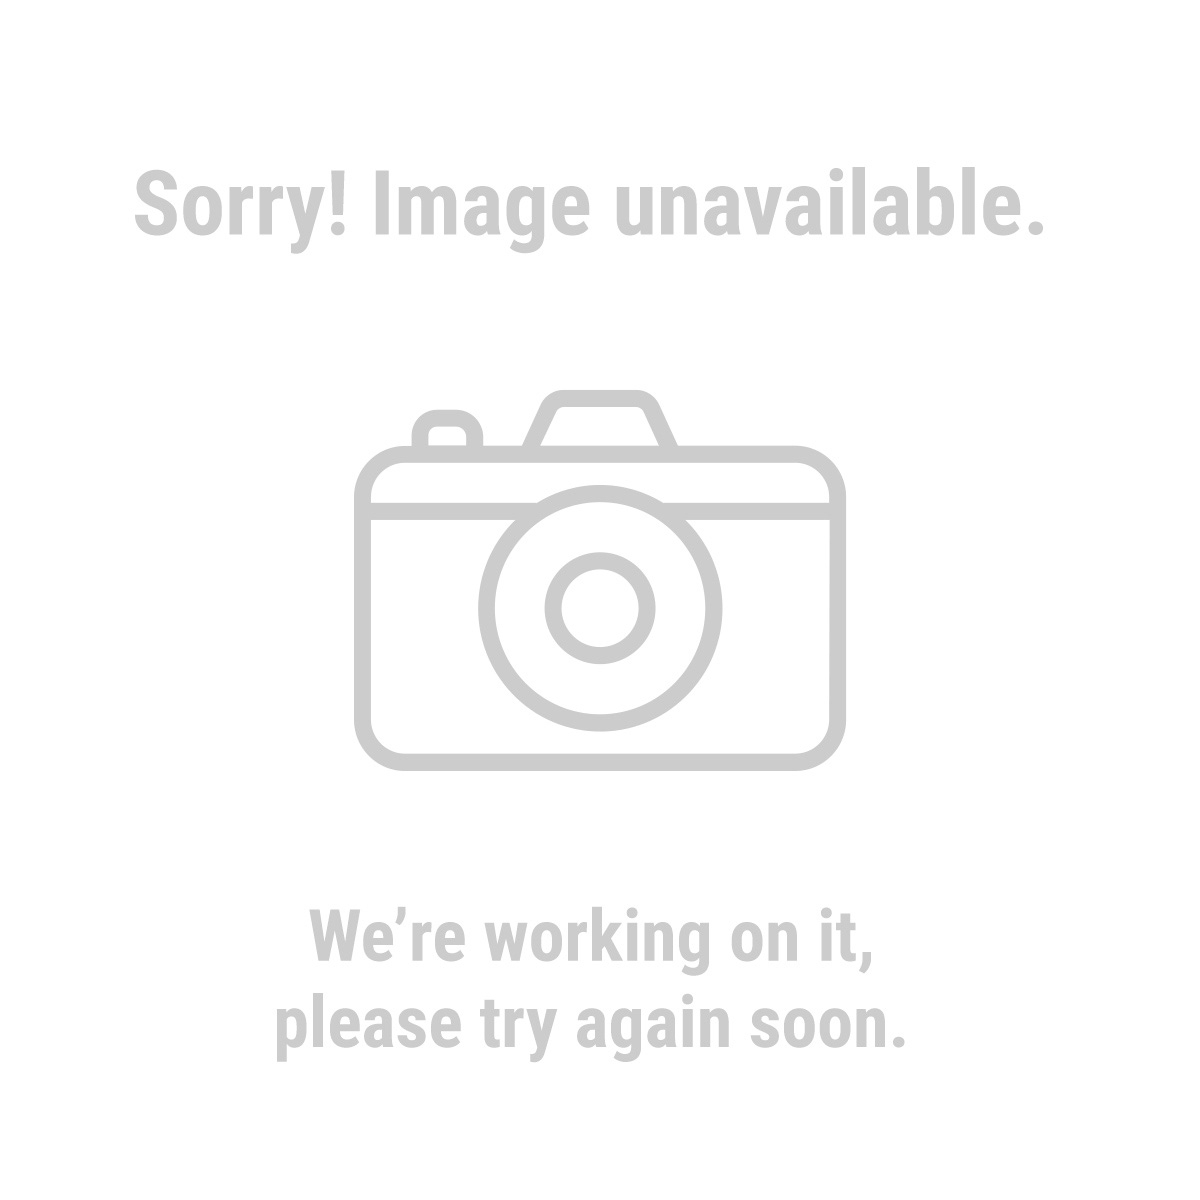 Haul-Master 69925 12 Volt Magnetic Towing Light Kit